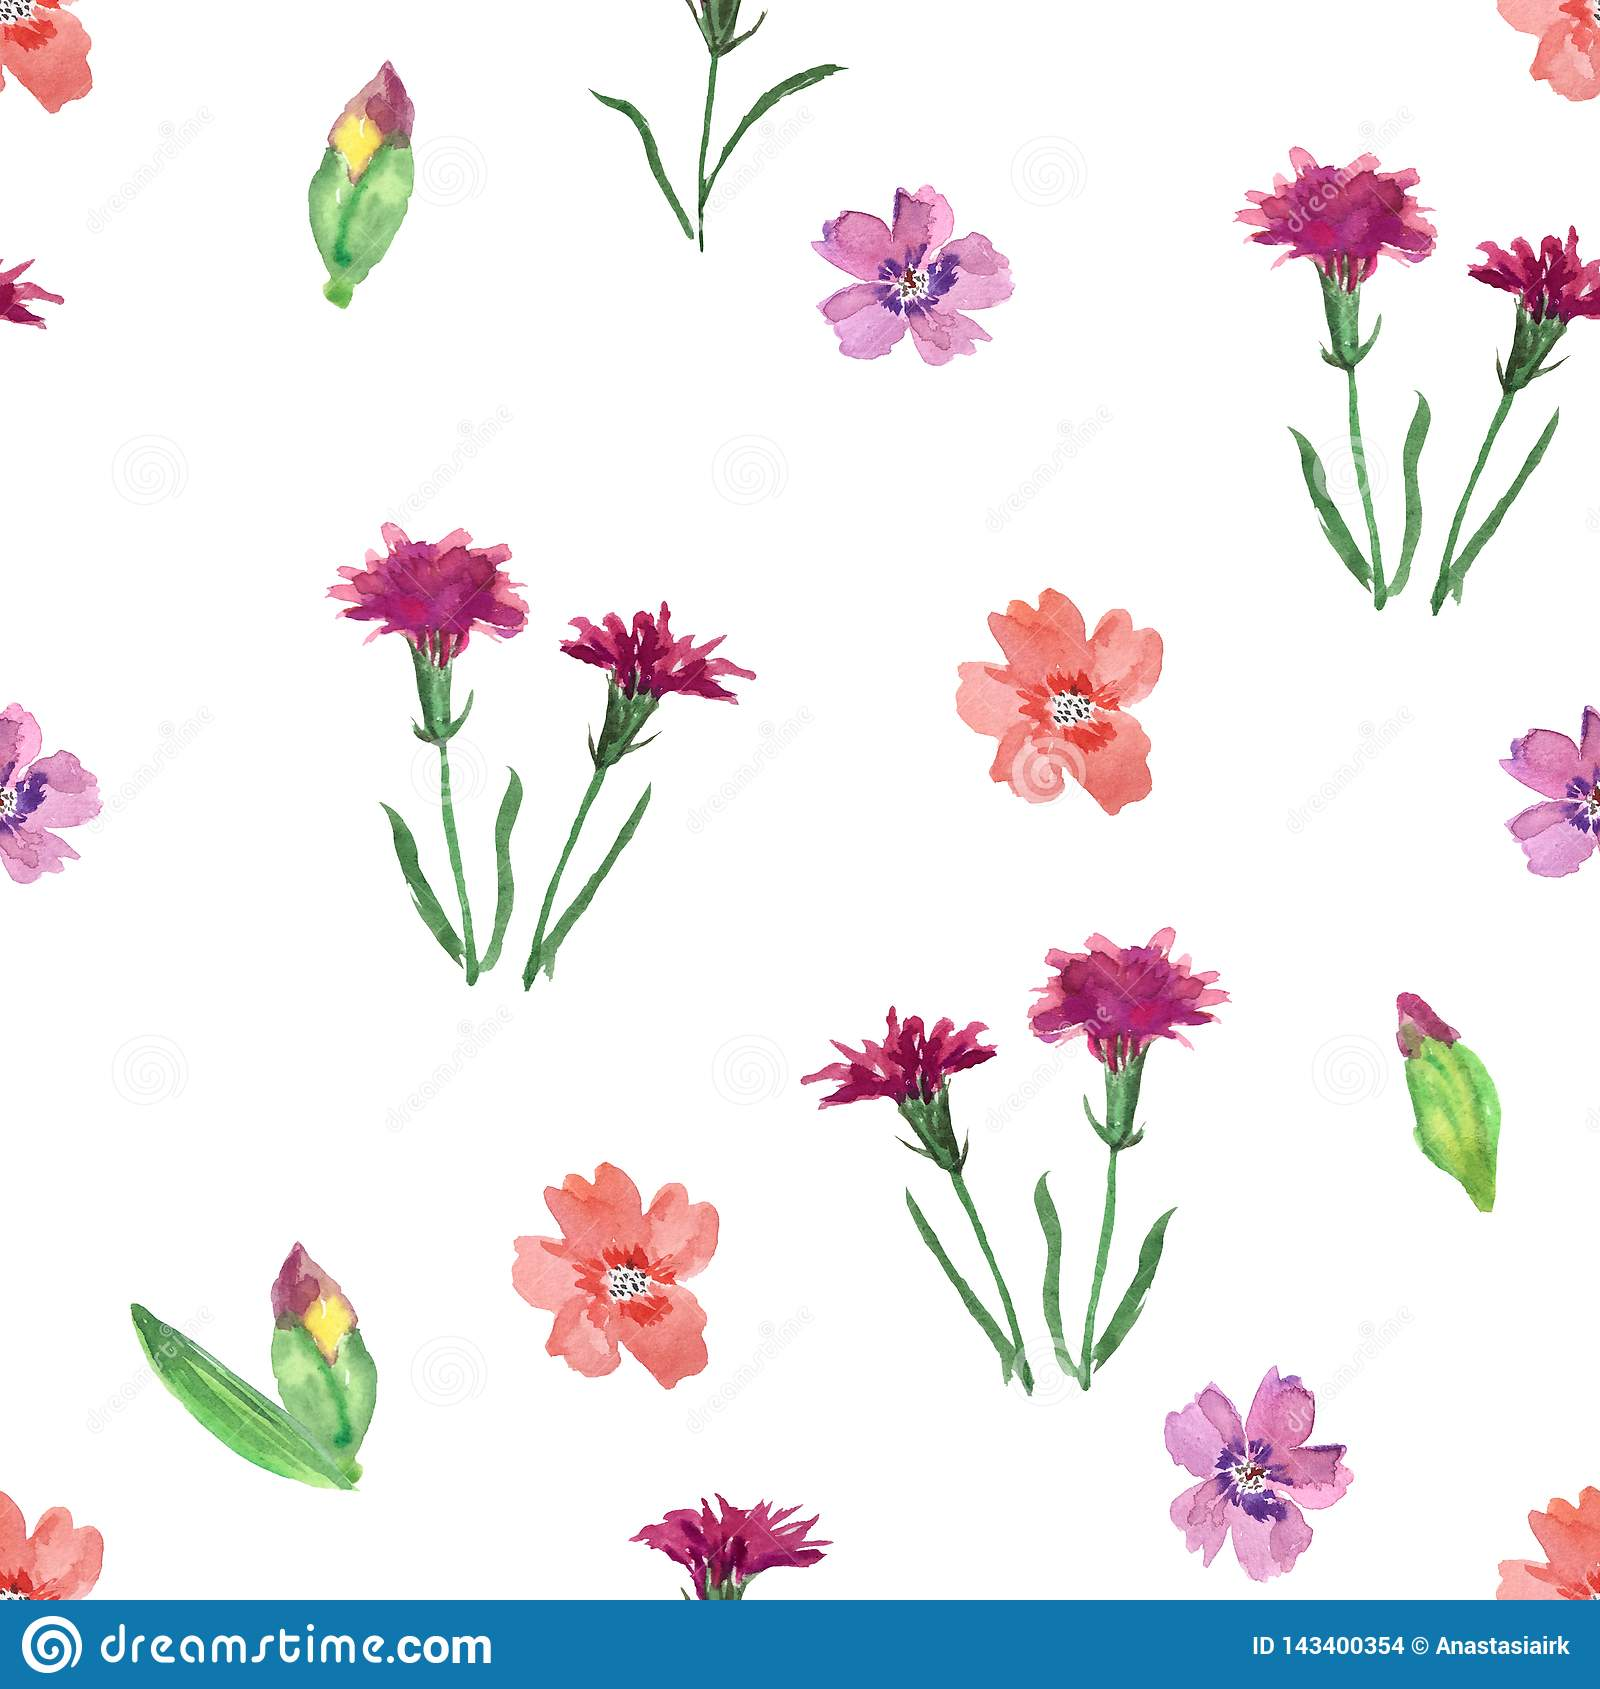 Seamless pattern with wild flowers on a white background.